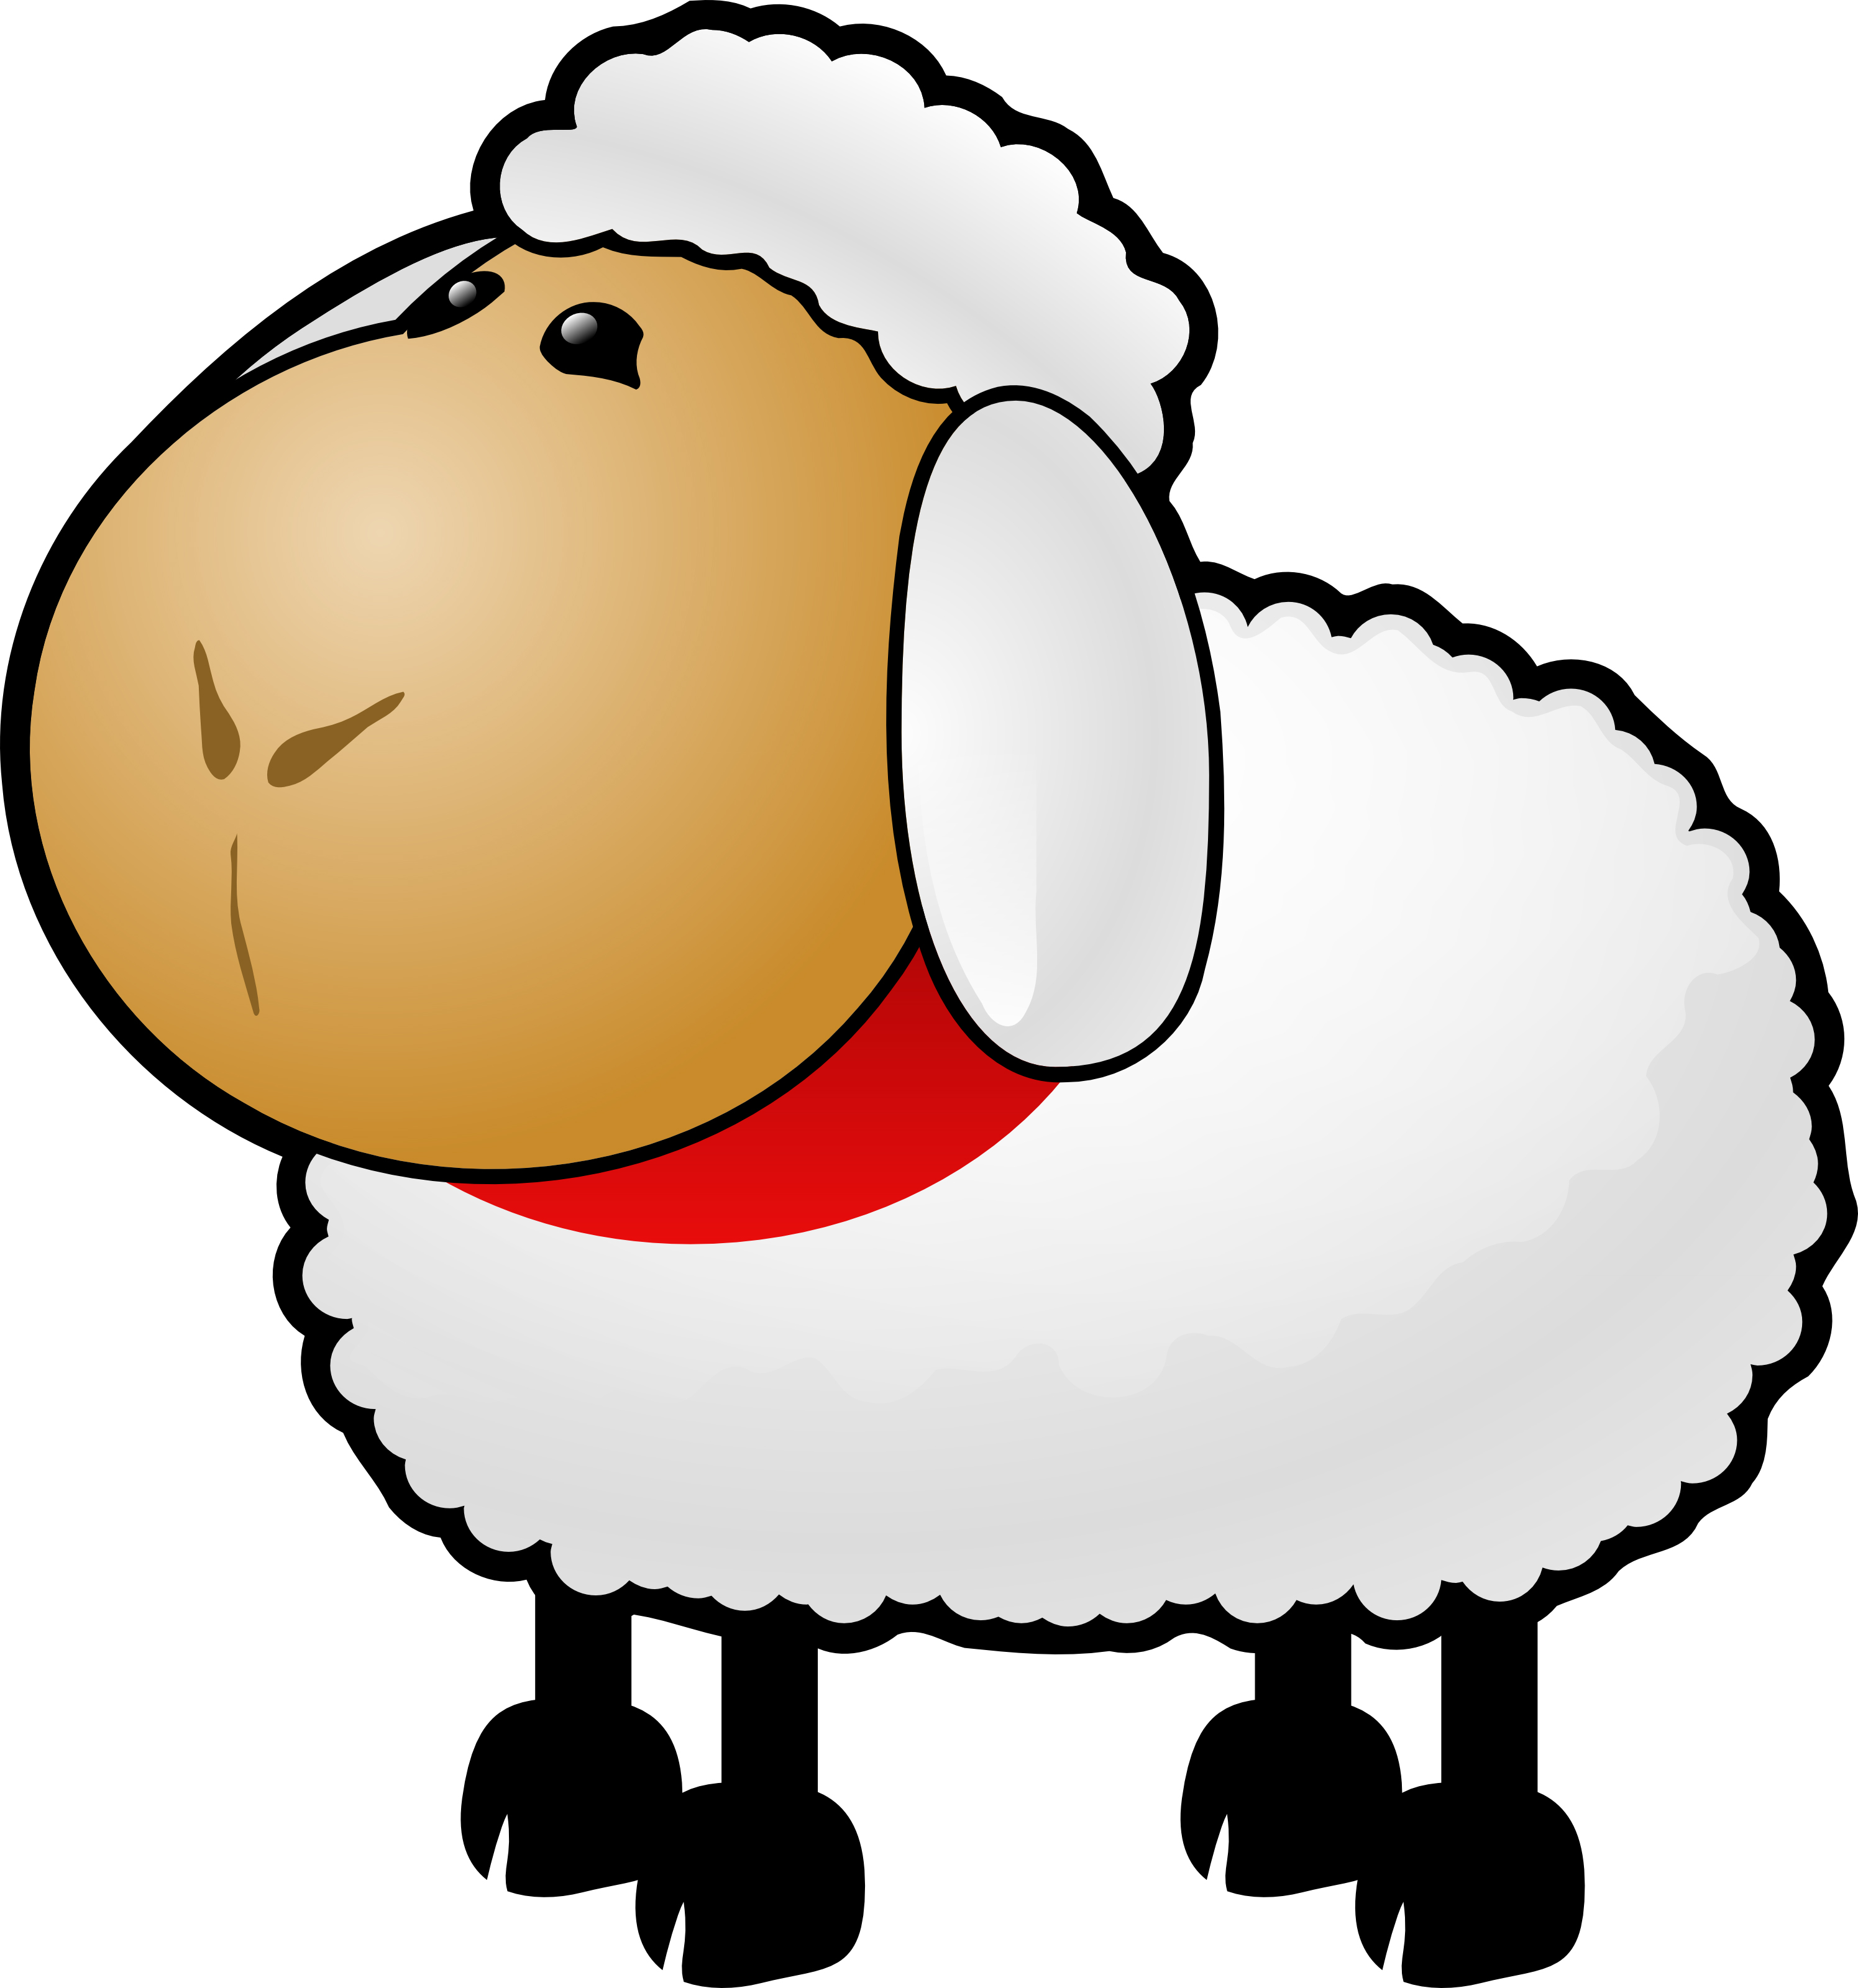 Sheep clipart #15, Download drawings